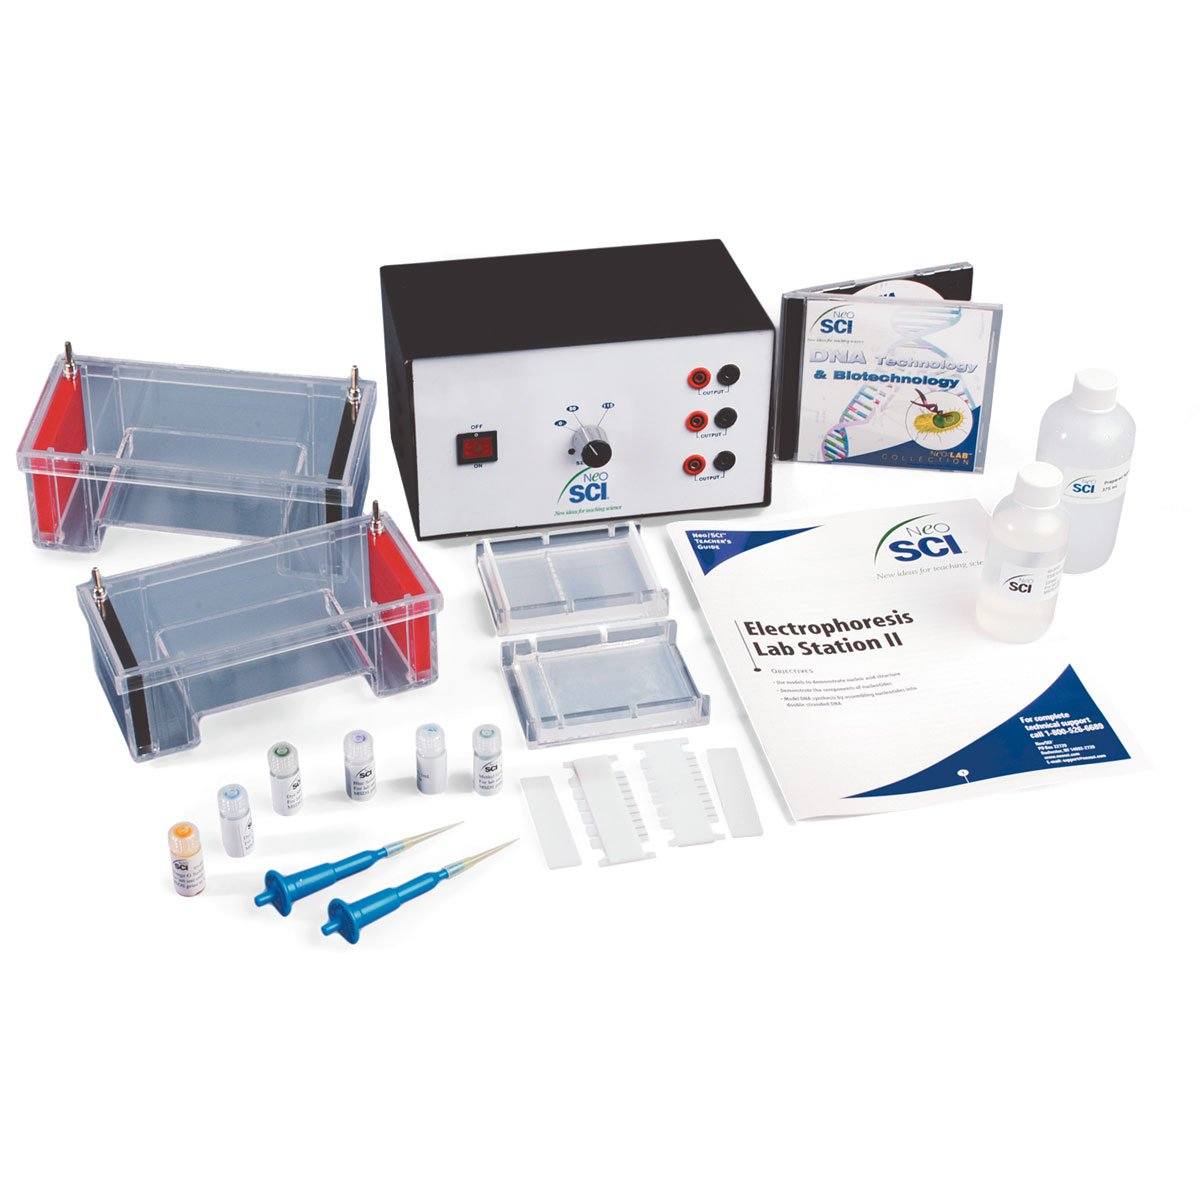 NEO SCI W55791 Electrophoresis Lab Station II ,Grade: 1 to 12 , 13'' Height, 11.5'' Wide, 17.37'' Length